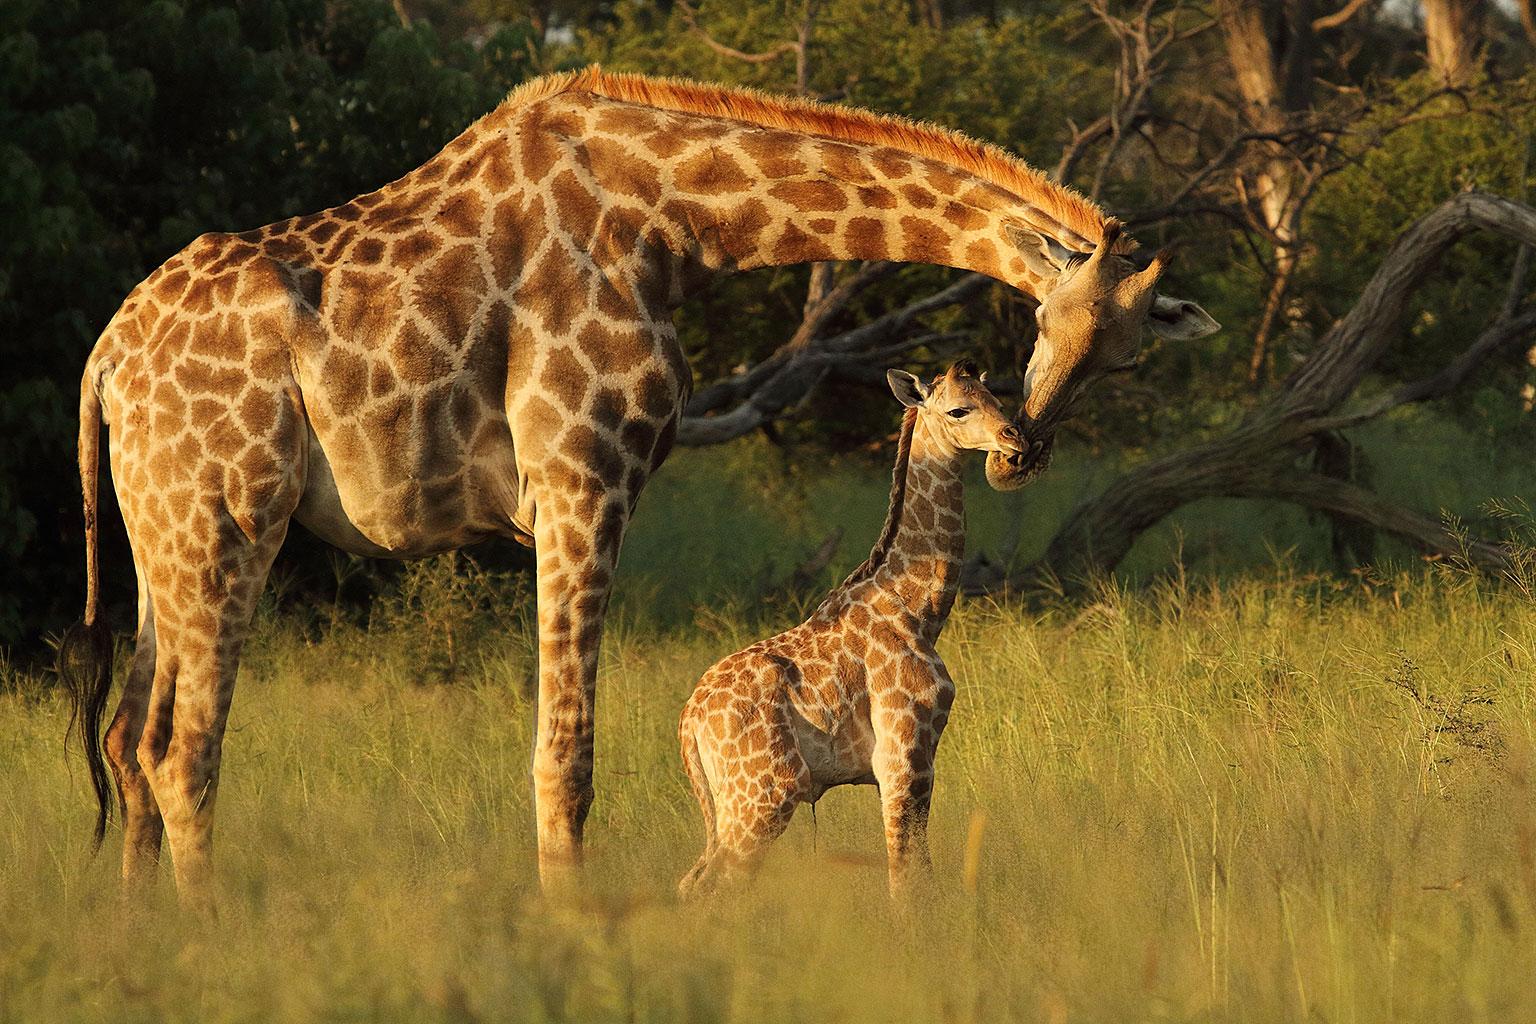 A-mother-Angolan-giraffe-tends-to-her-calf-Nature-Guide-Training-Botswana